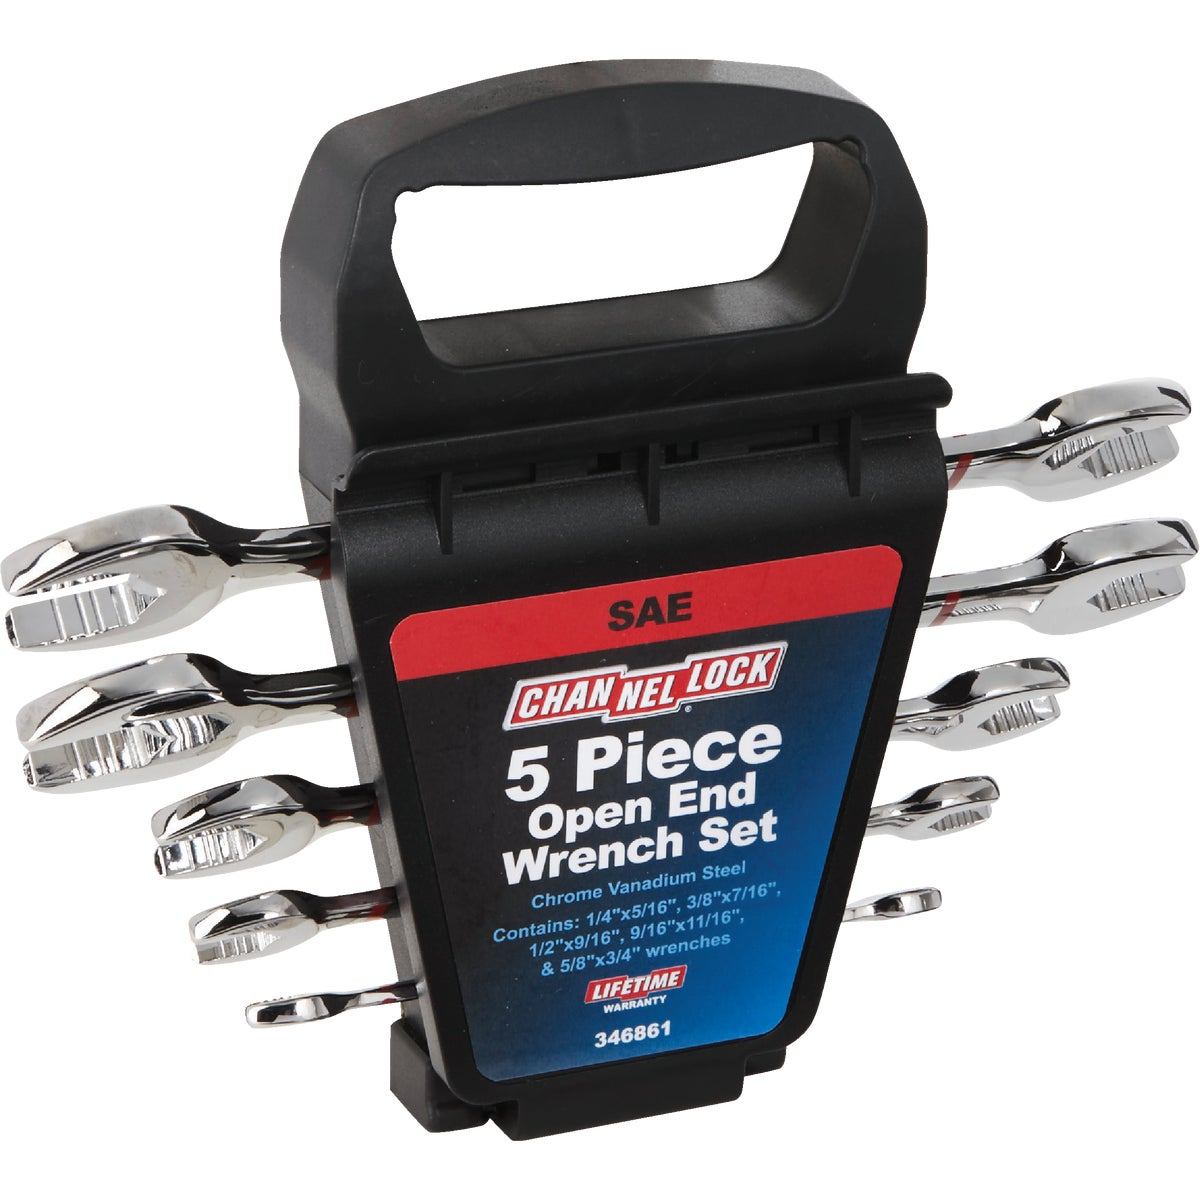 5PC OPEN END WRENCH SET